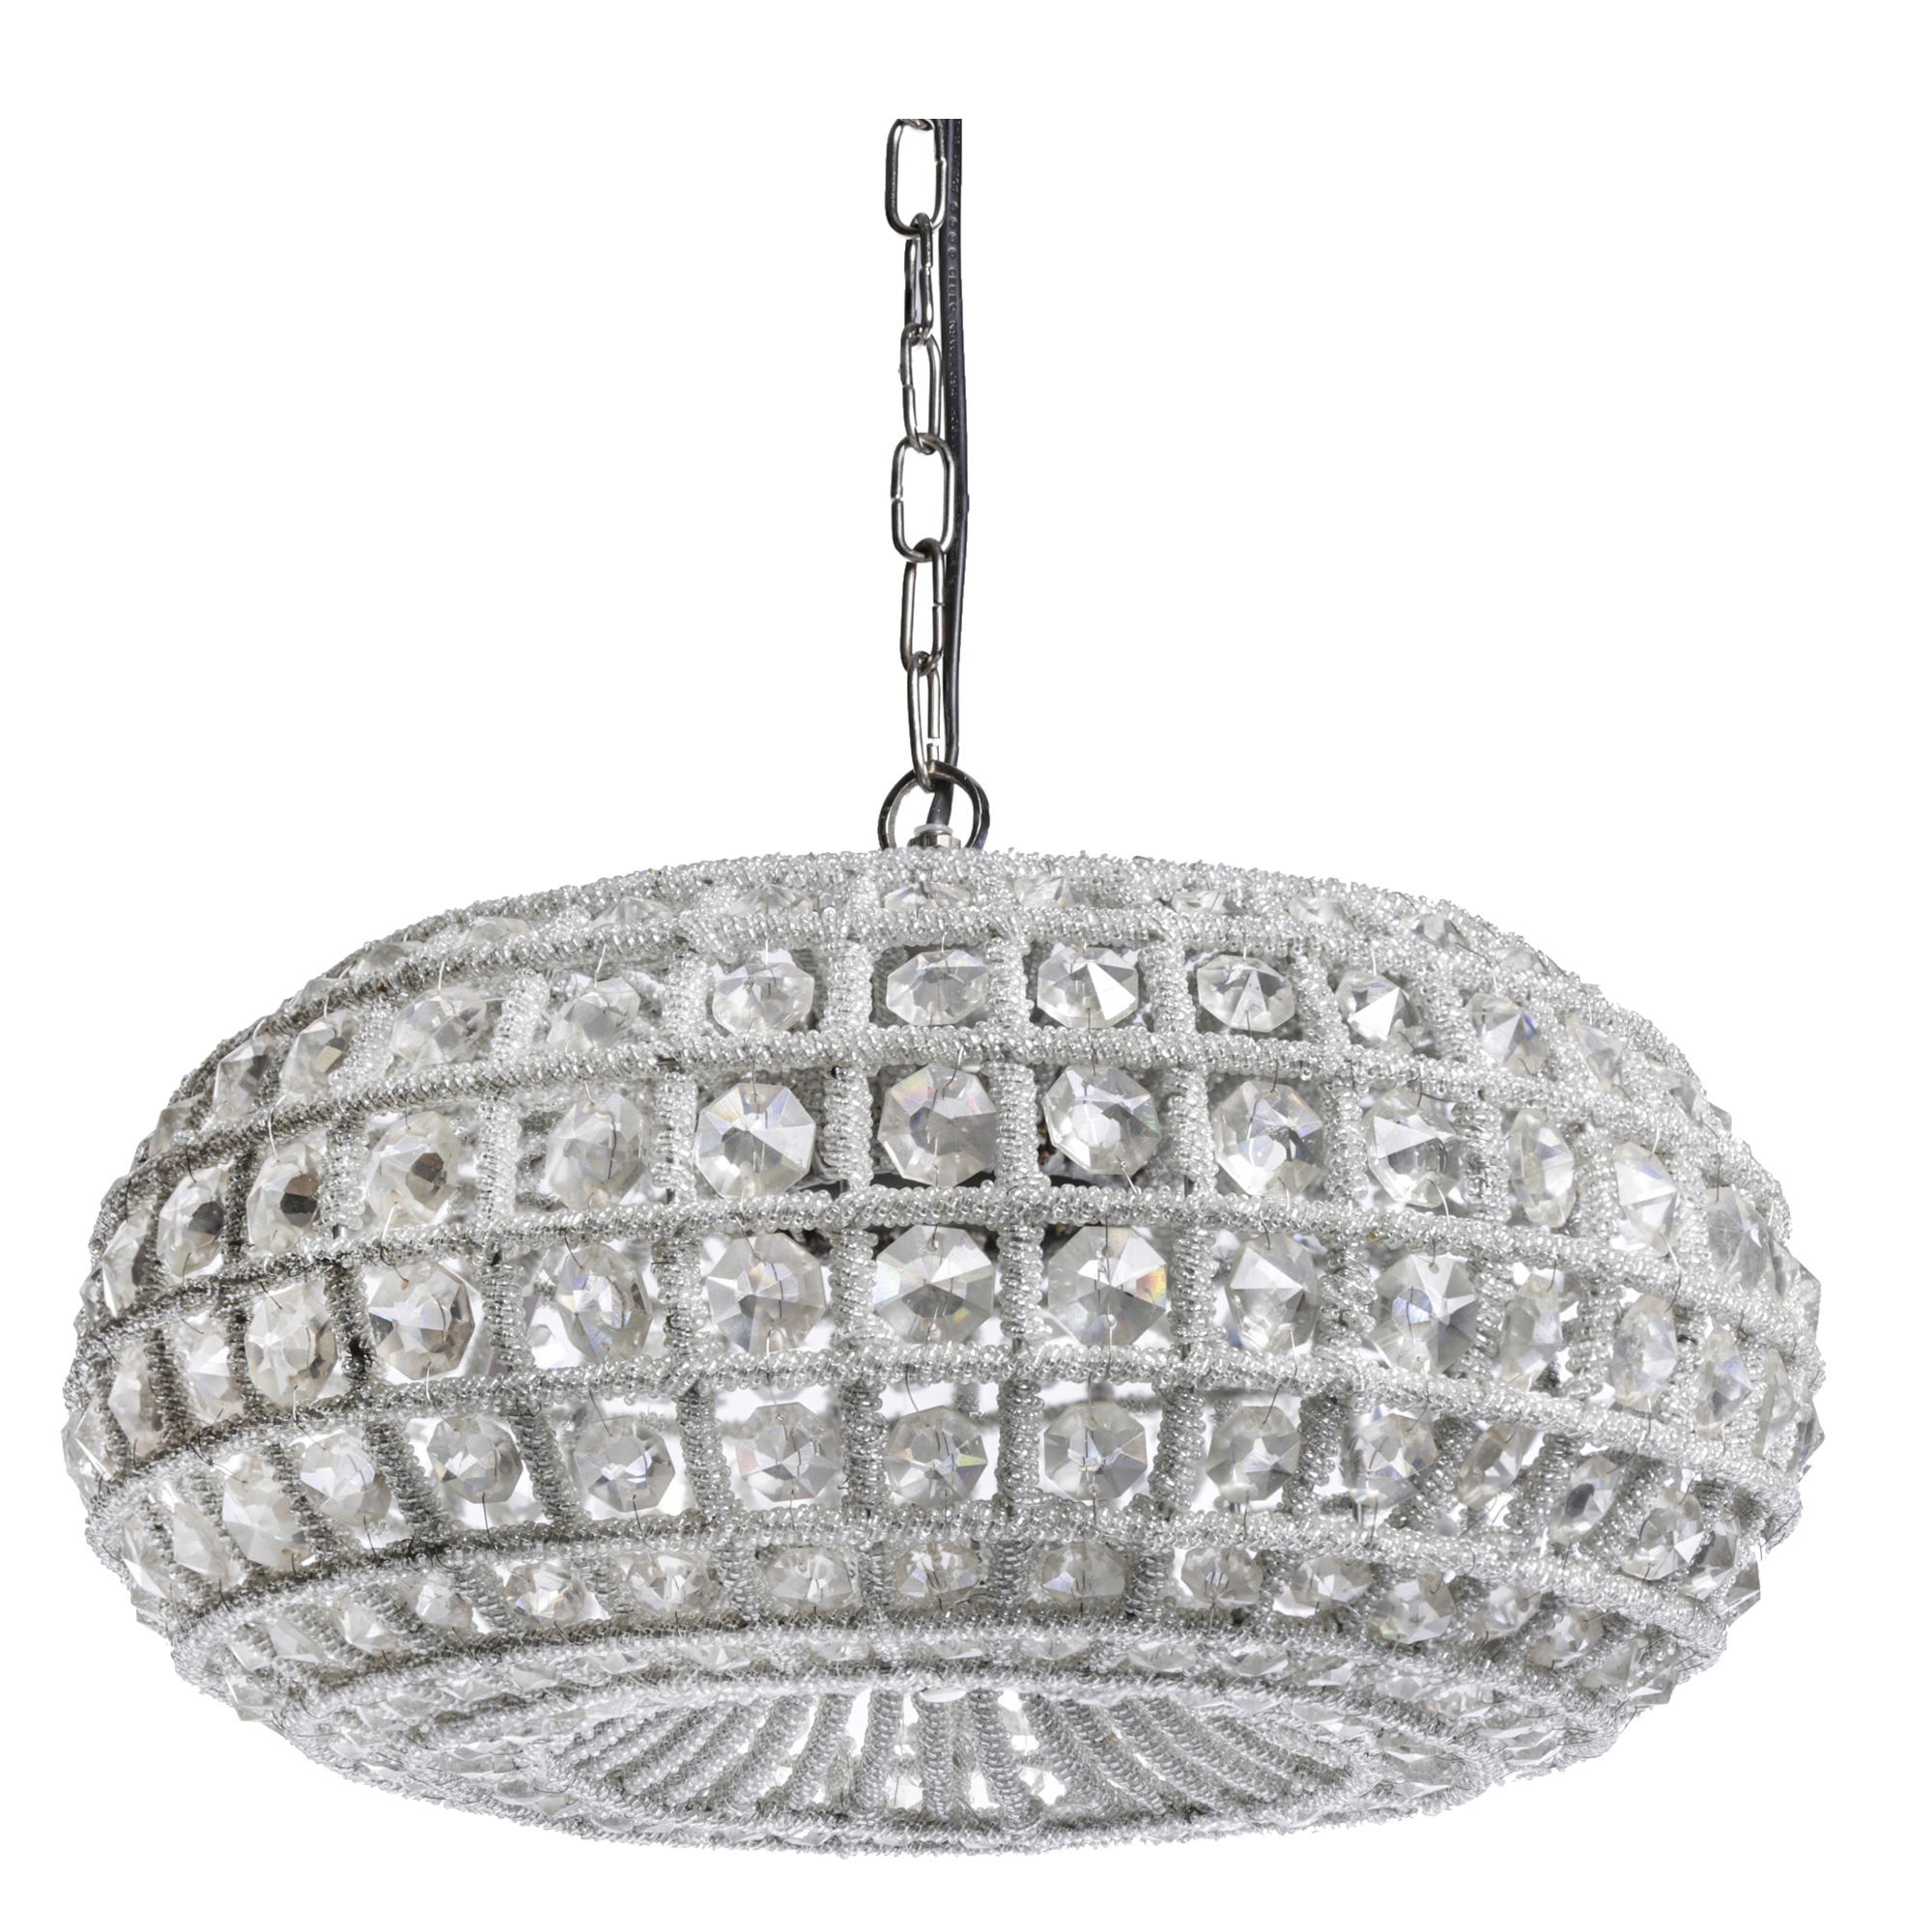 PTMD thrilling lamp wave XL